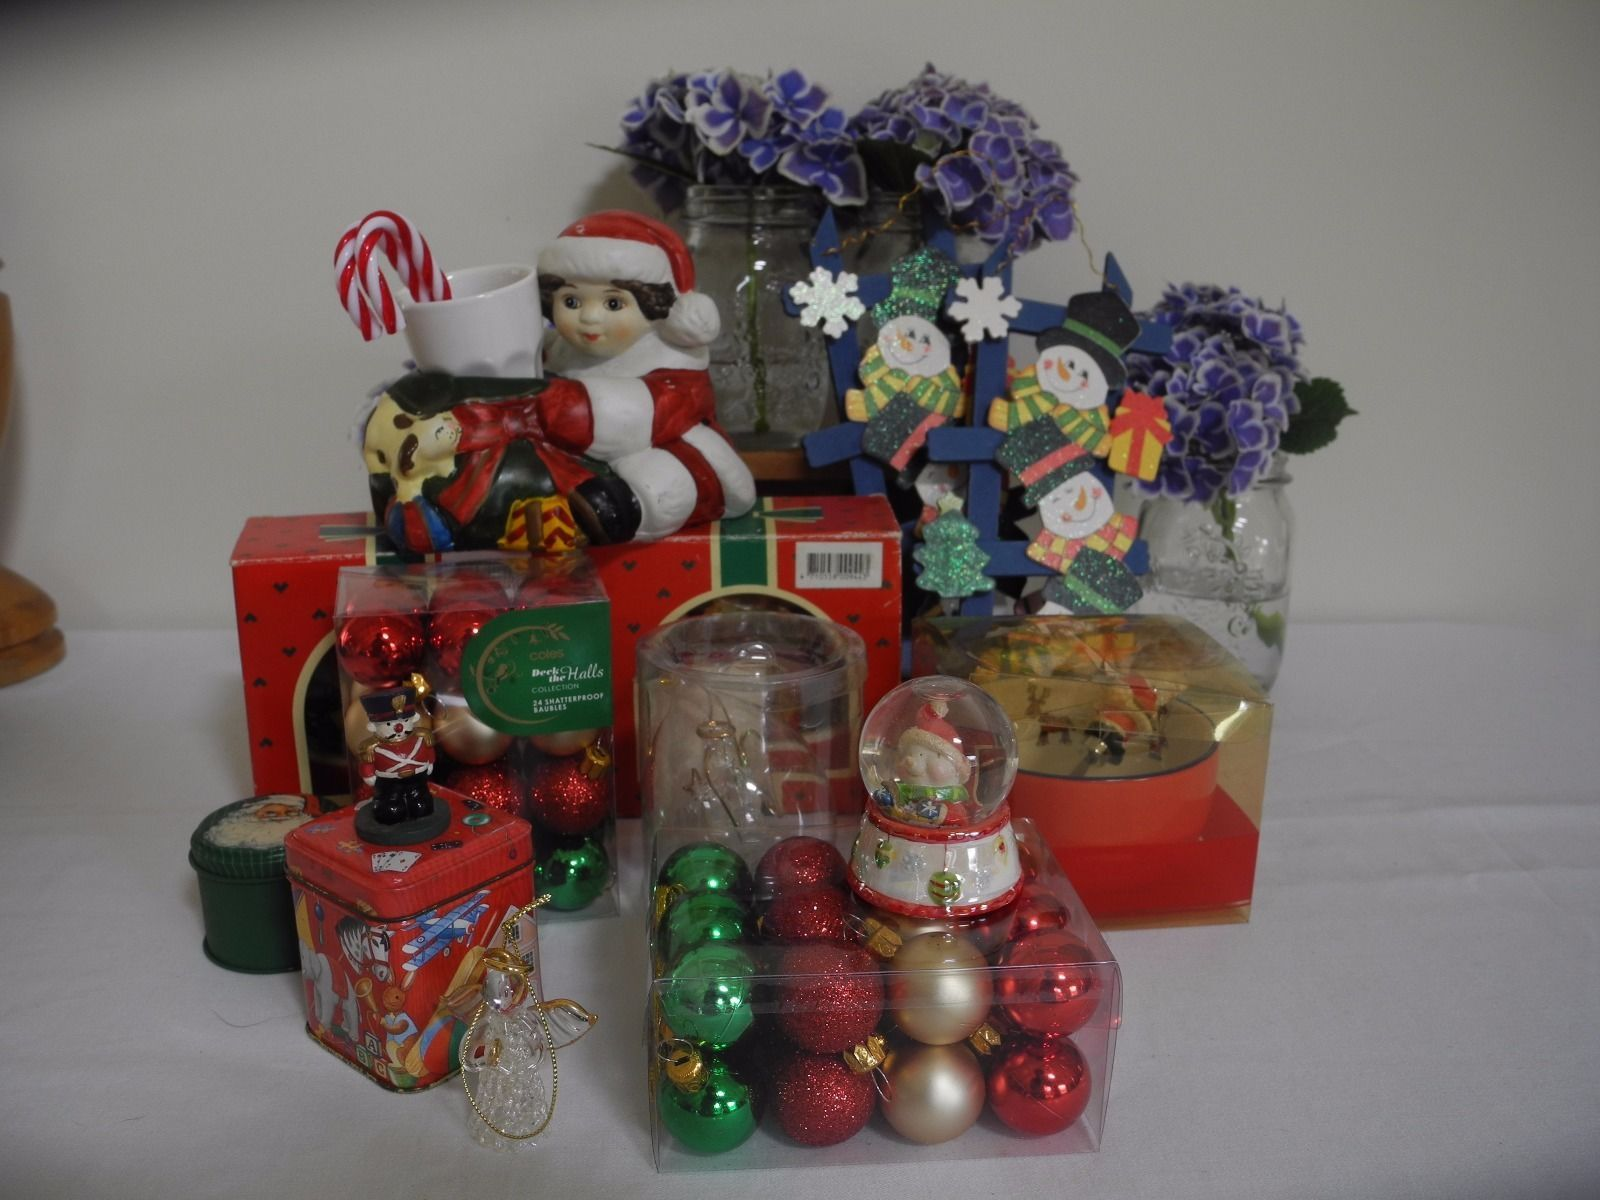 Mixed Bulk Lot Christmas Decorations Tins Ceramic Snow Domes in Collectables, Homeware, Kitchenware, Decorative Ornaments, Christmas, Holiday | eBay